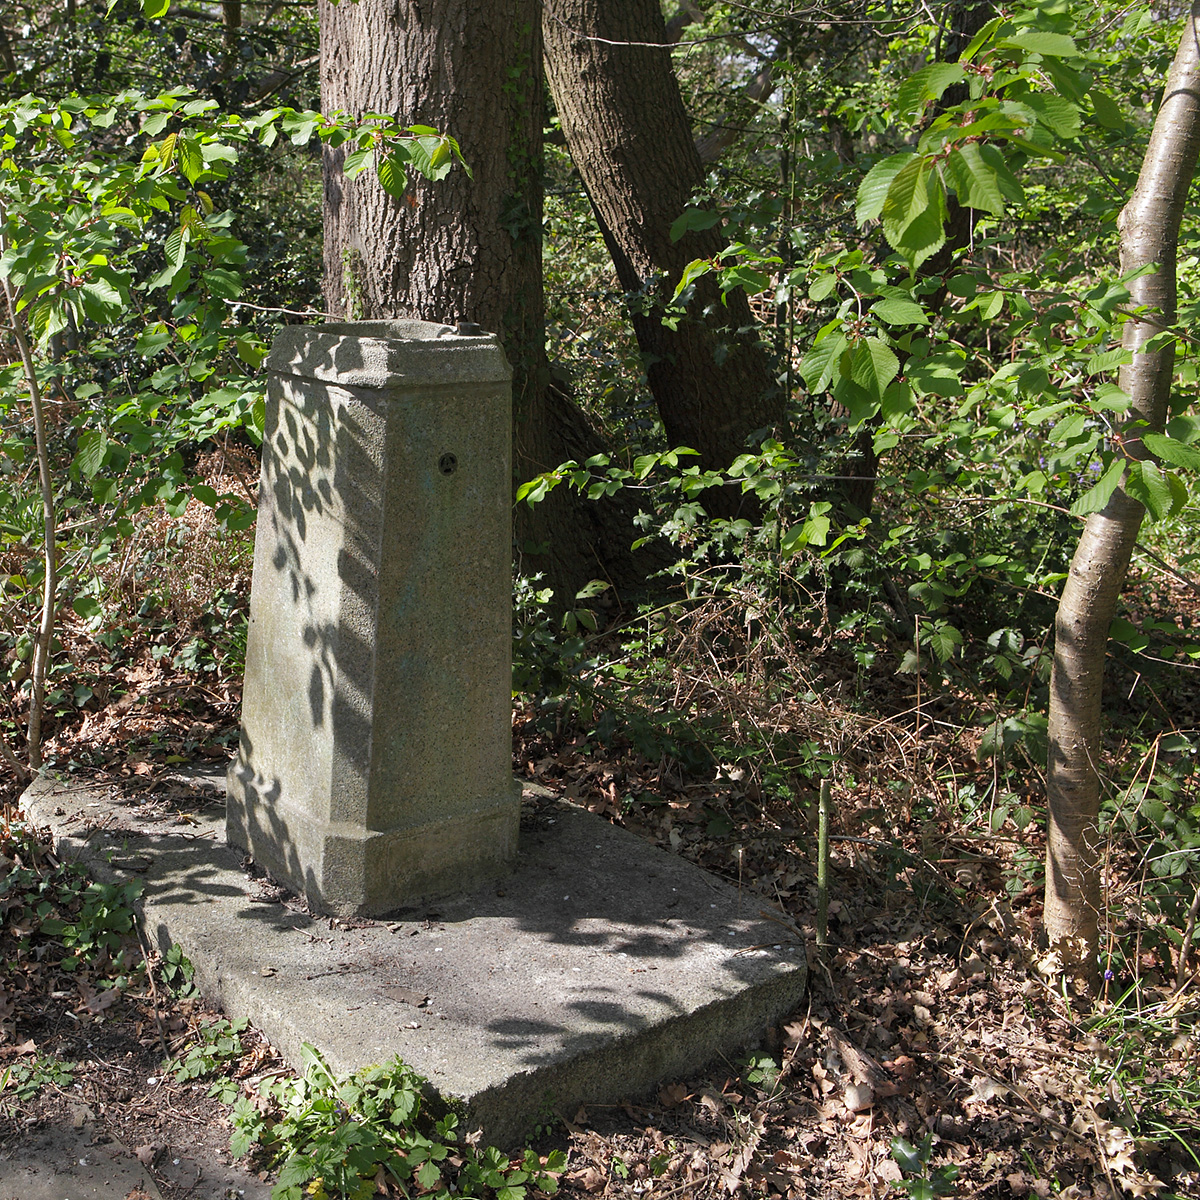 20170412_Croydon_Spring-Park-Wood_Drinking-fountain